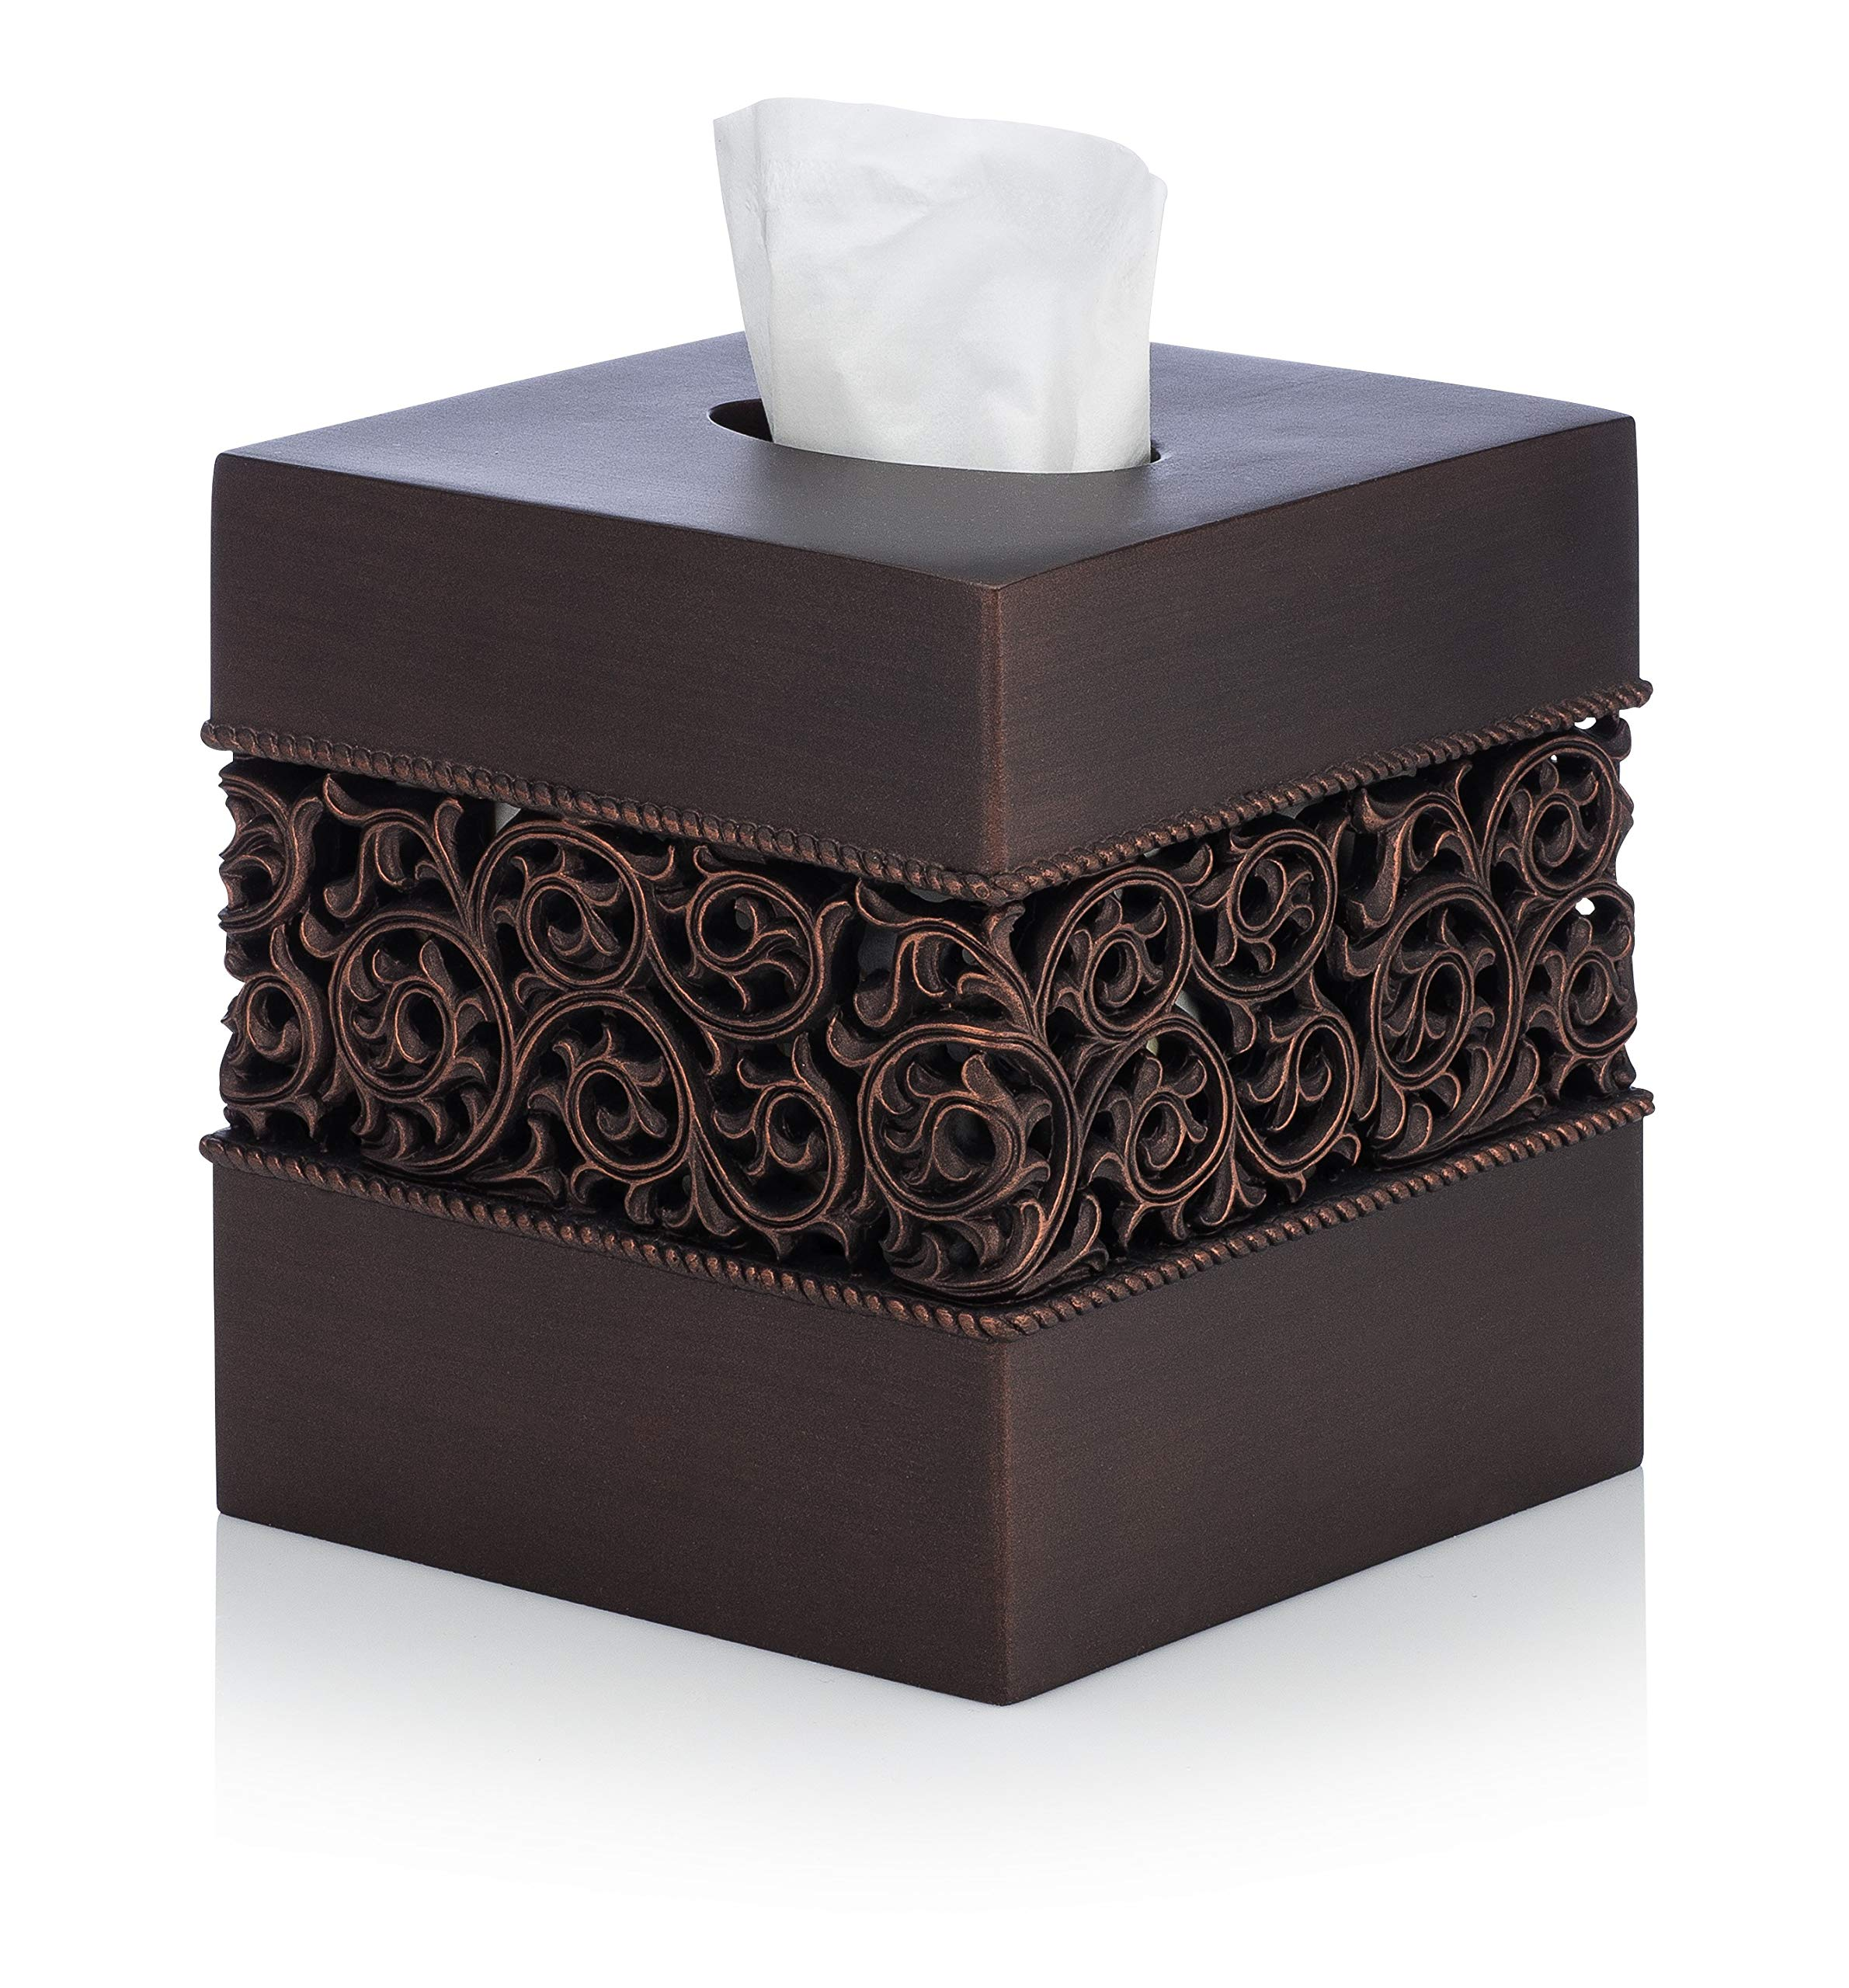 Essentra Home Bronze Finish Squared Tissue Box Cover for Bathroom Vanity Counter Tops Also Great for Bedrooms and Living Rooms by Essentra Home